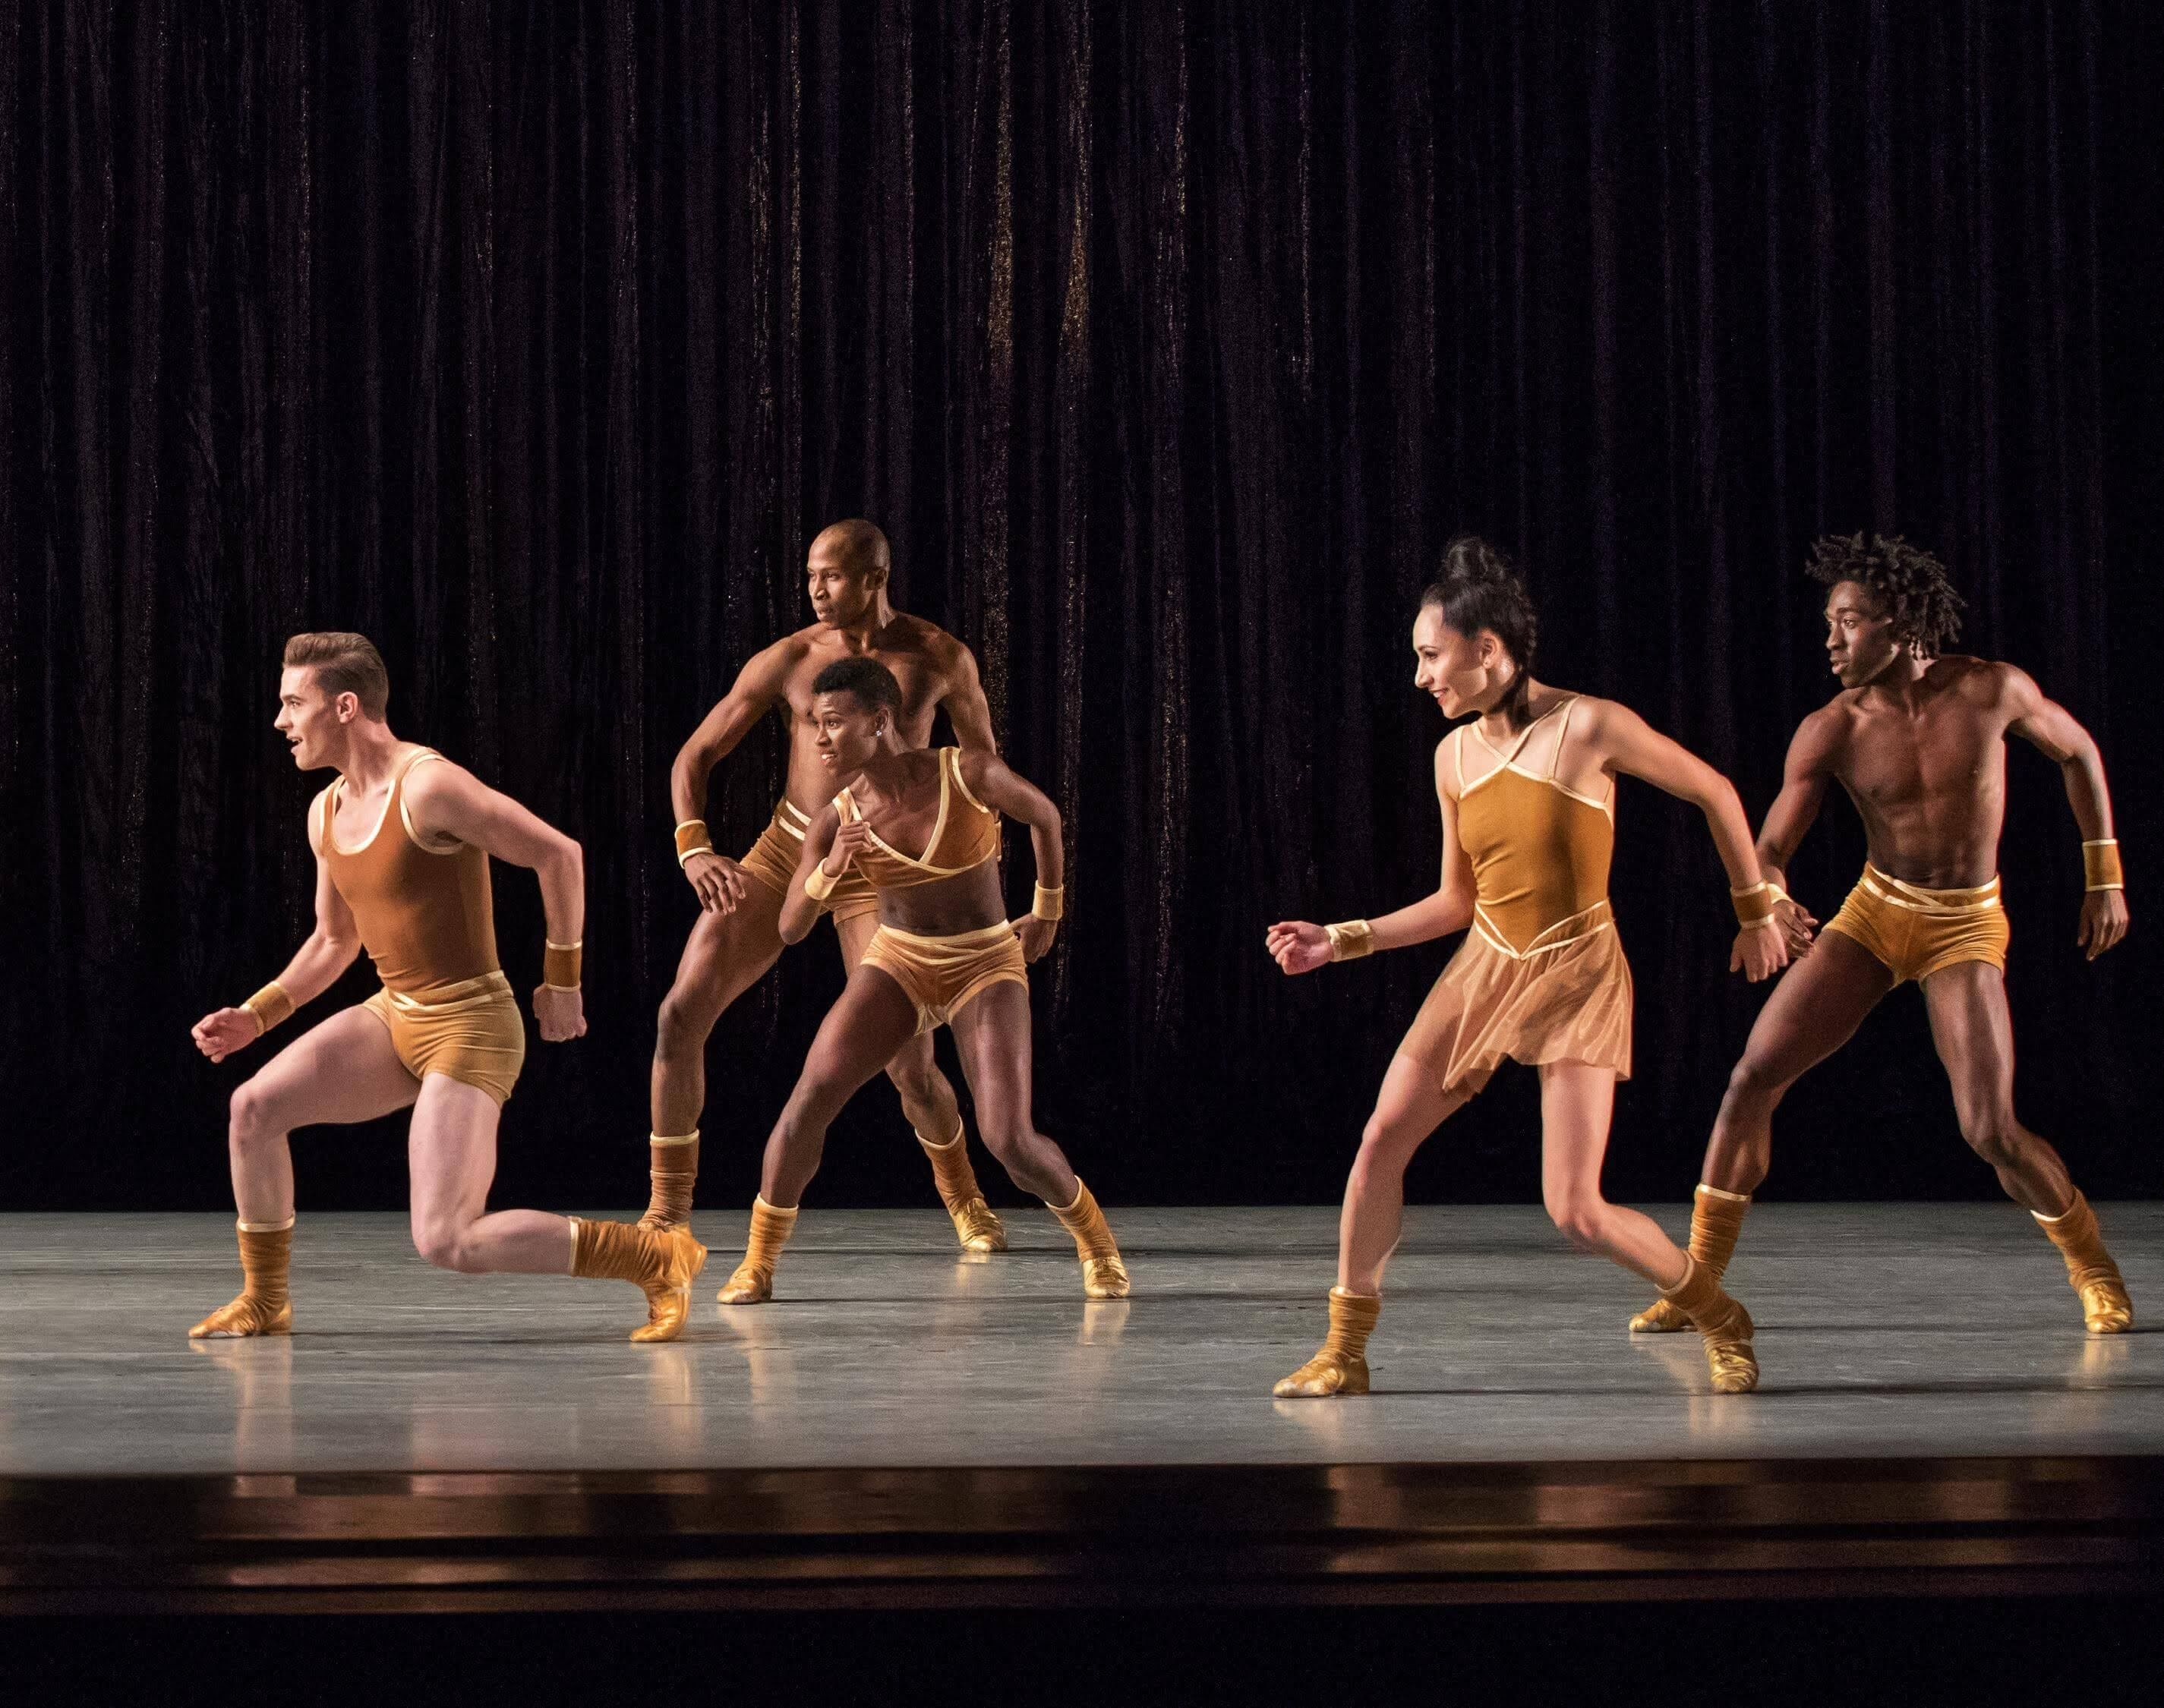 AAADT in Twyla Tharp's The Golden Sectio